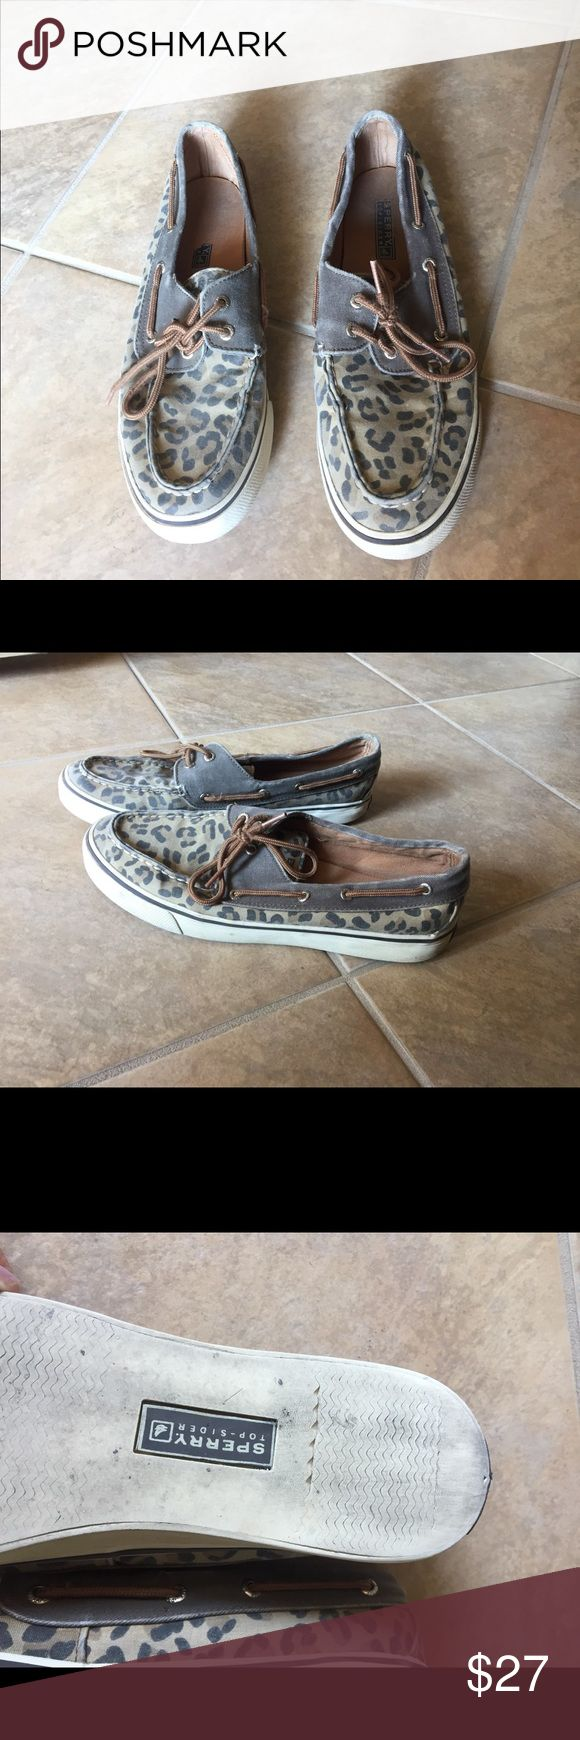 Leopard Sperrys These are brown leapored sperrys,they are in great condition! Sperry Top-Sider Shoes Flats & Loafers